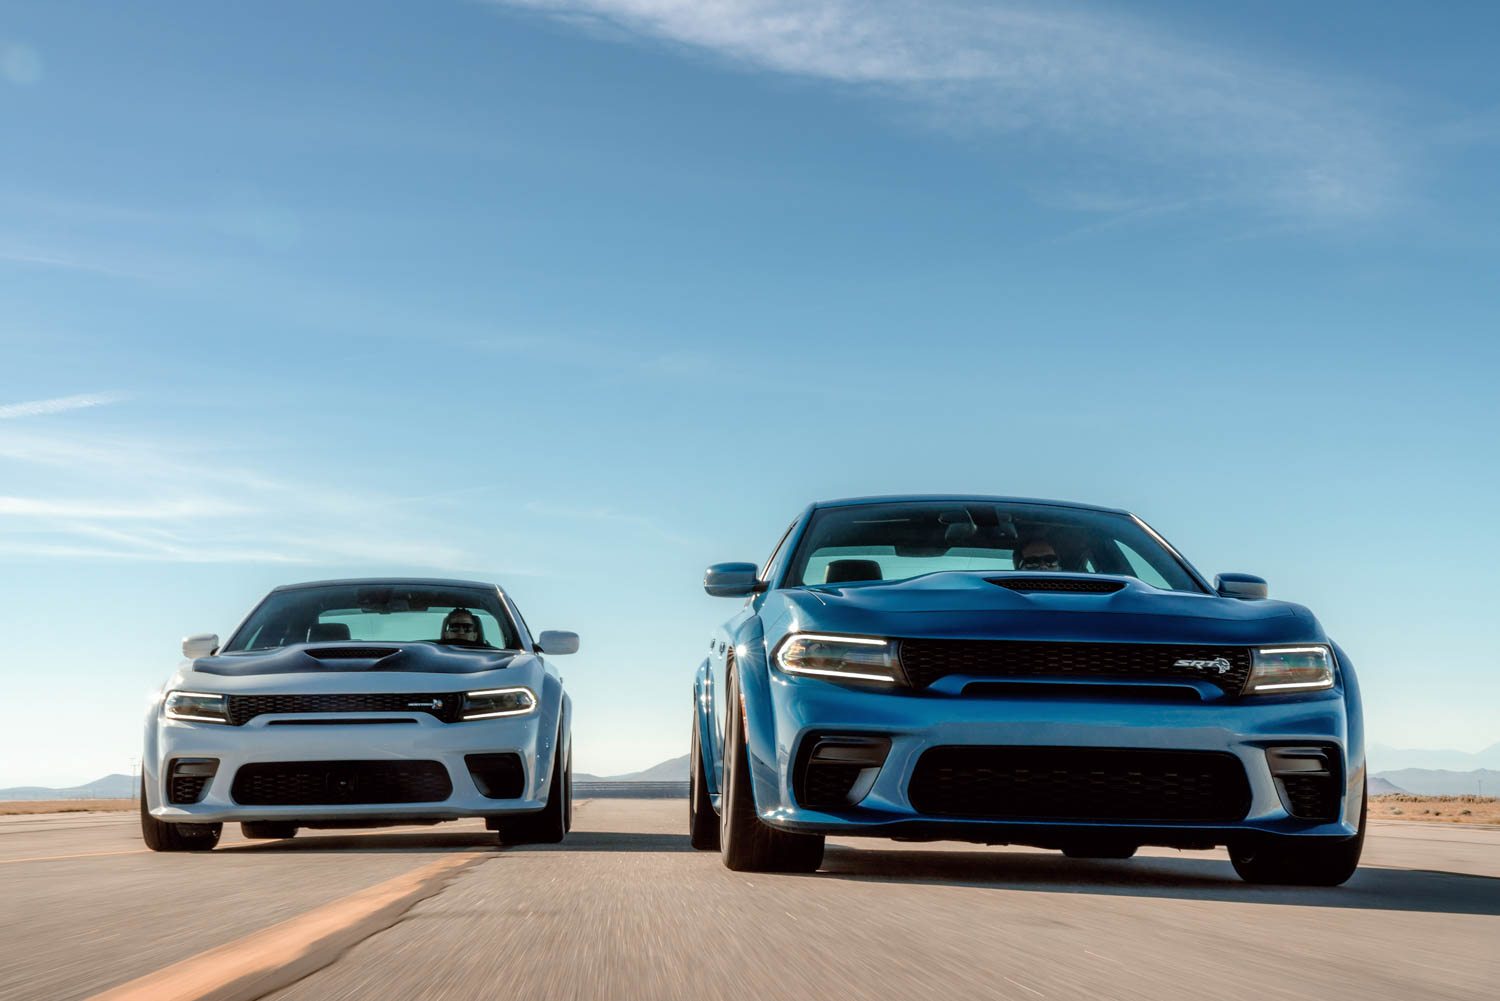 2020 Charger Hellcat Widebody and Charger Scat Pack Widebody